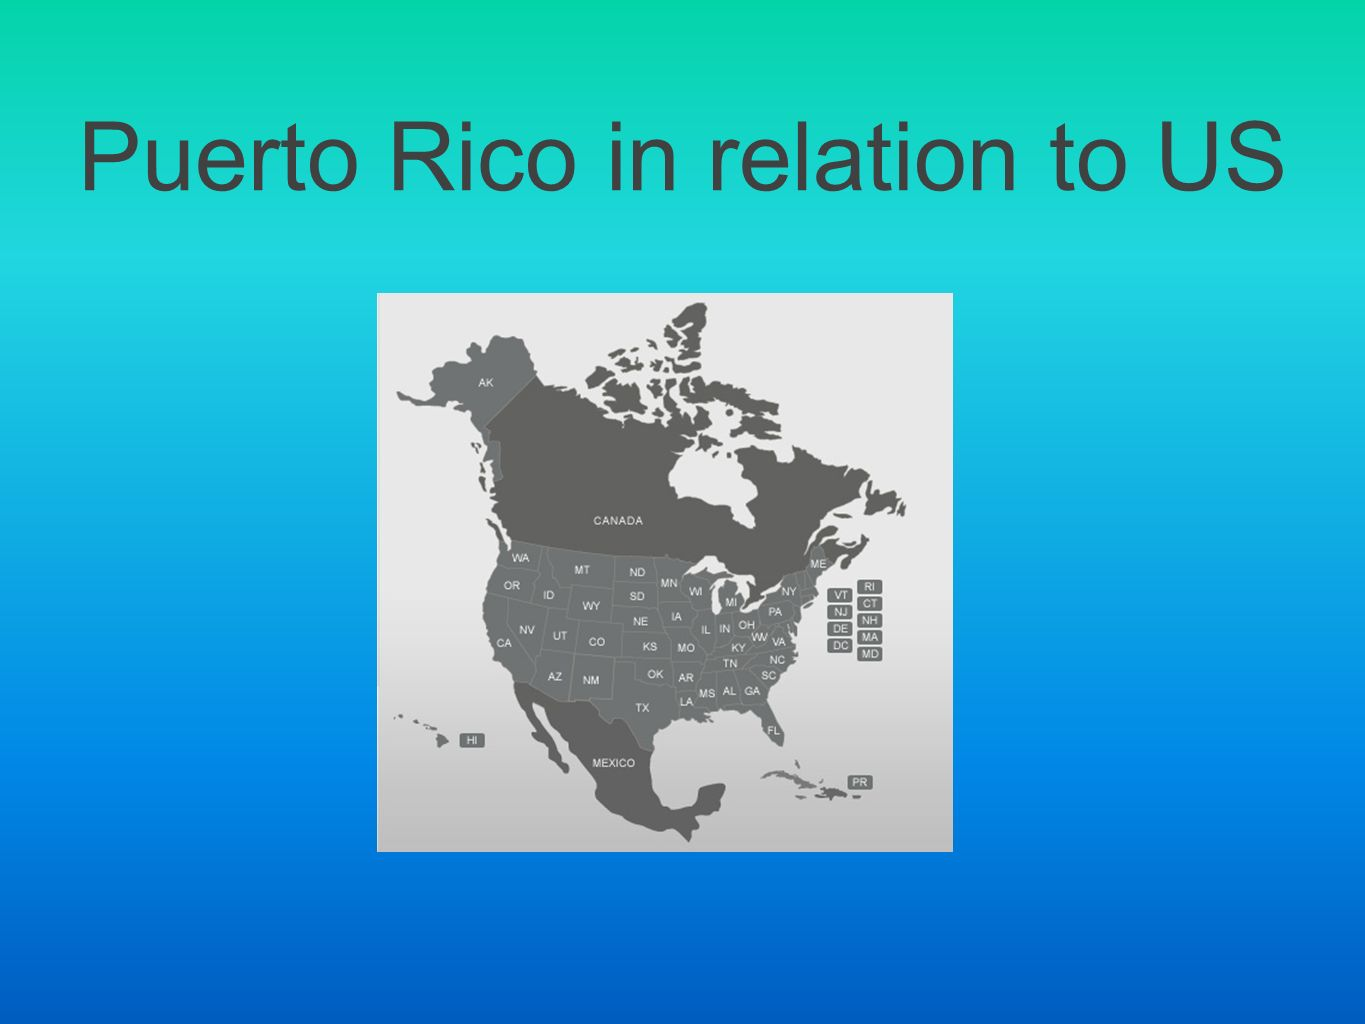 what is the relationship between us and puerto rico